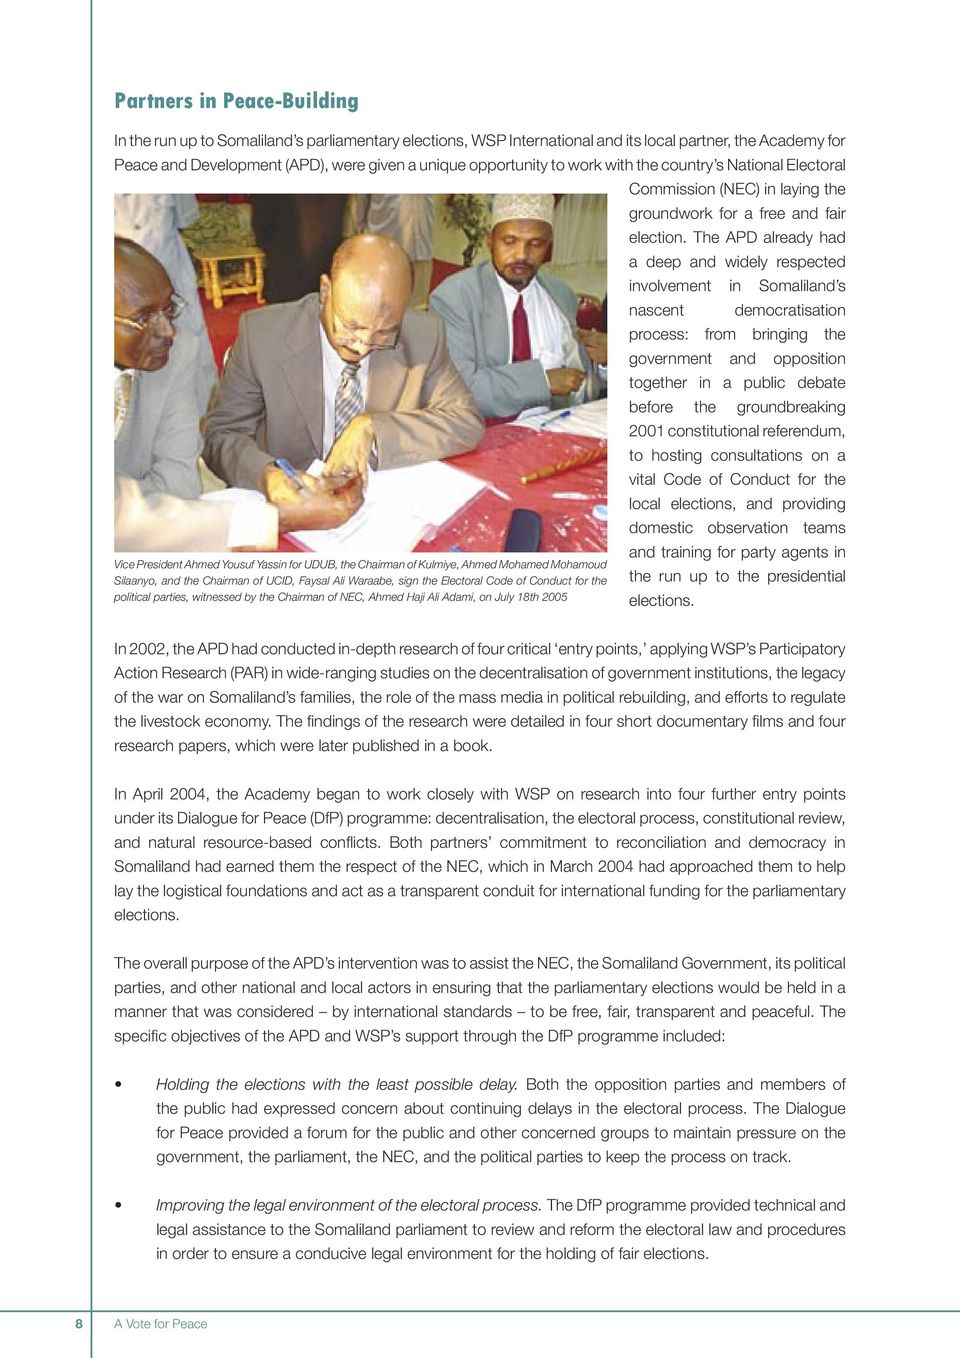 the Electoral Code of Conduct for the political parties, witnessed by the Chairman of NEC, Ahmed Haji Ali Adami, on July 18th 2005 Commission (NEC) in laying the groundwork for a free and fair